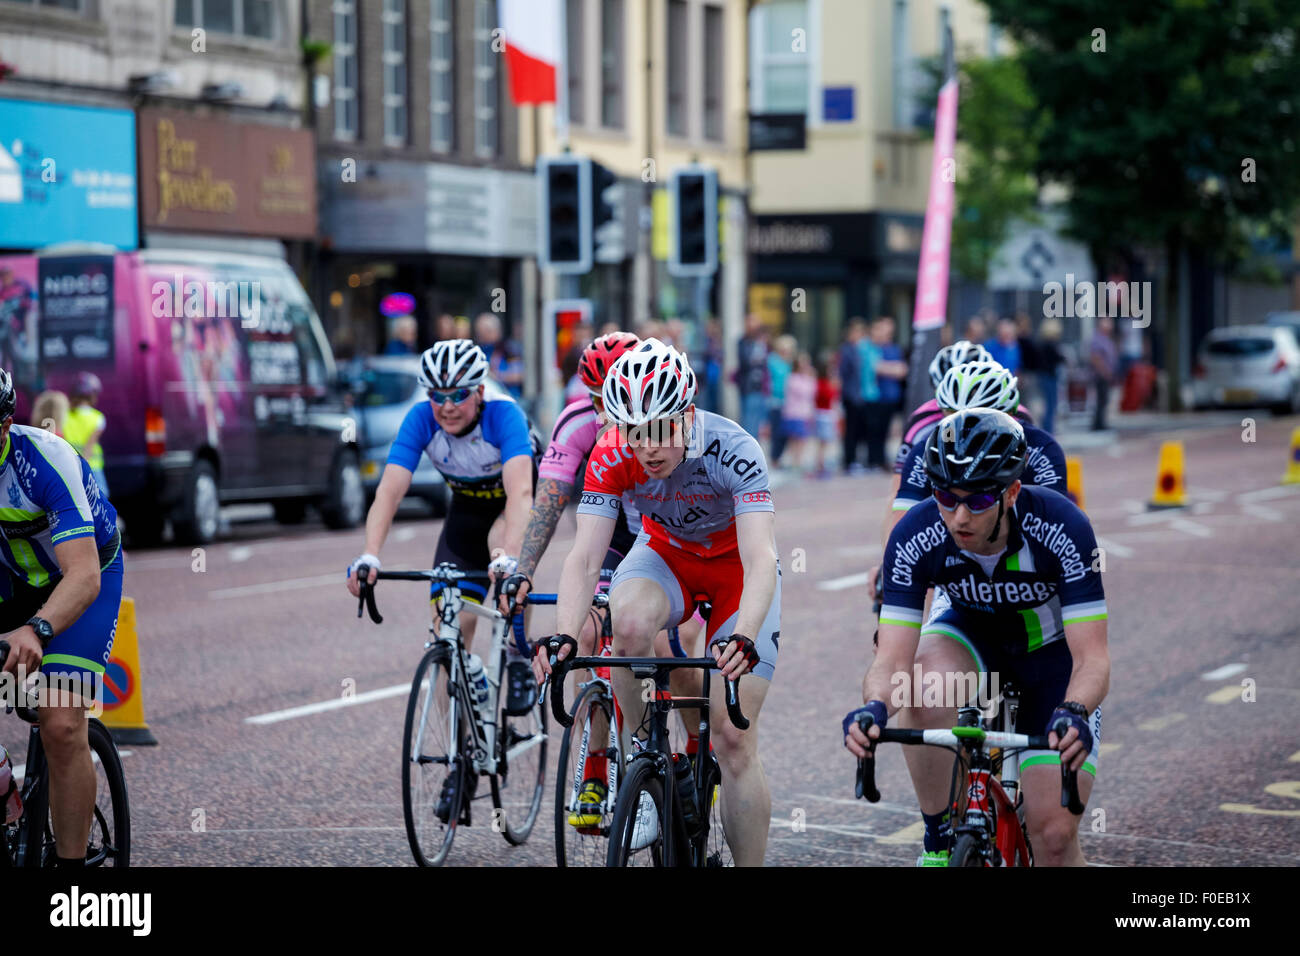 Bangor, Co. Down, Northern Ireland. 13th August 2015. The Seat Criterium Super 7 Final cycle race is abandoned after Stock Photo